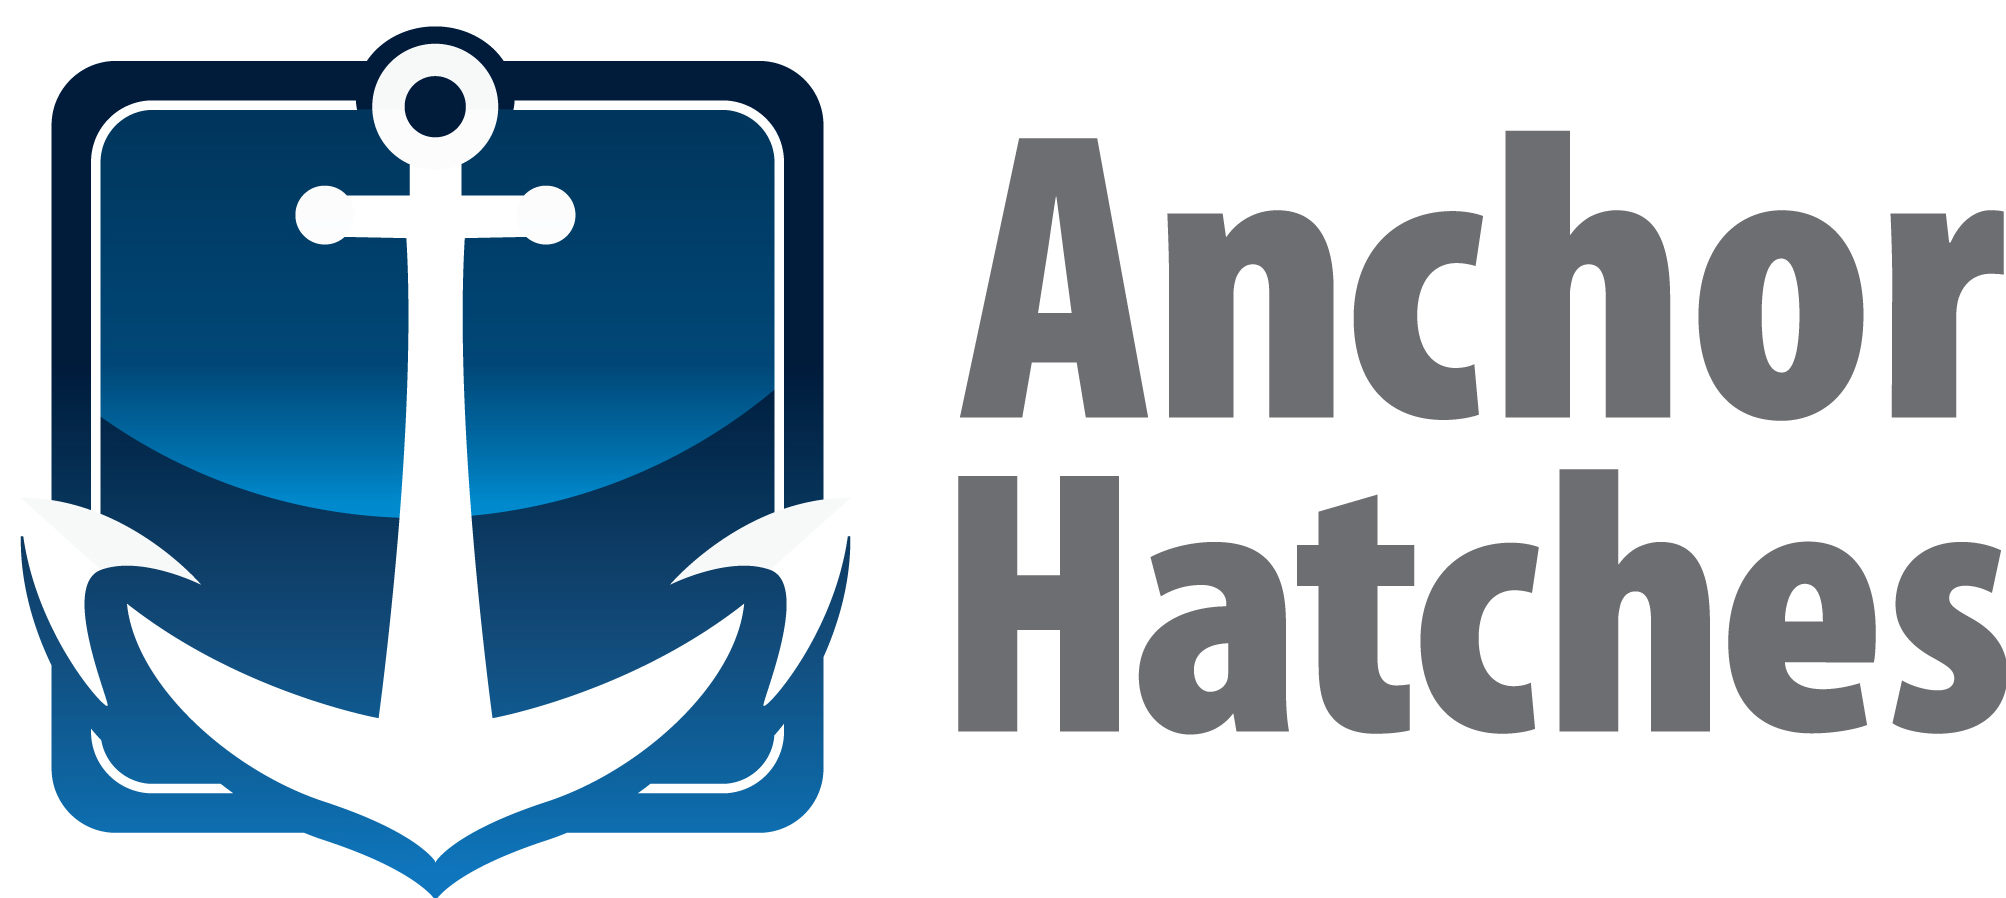 Anchor Hatches (P&E Manufacturing)